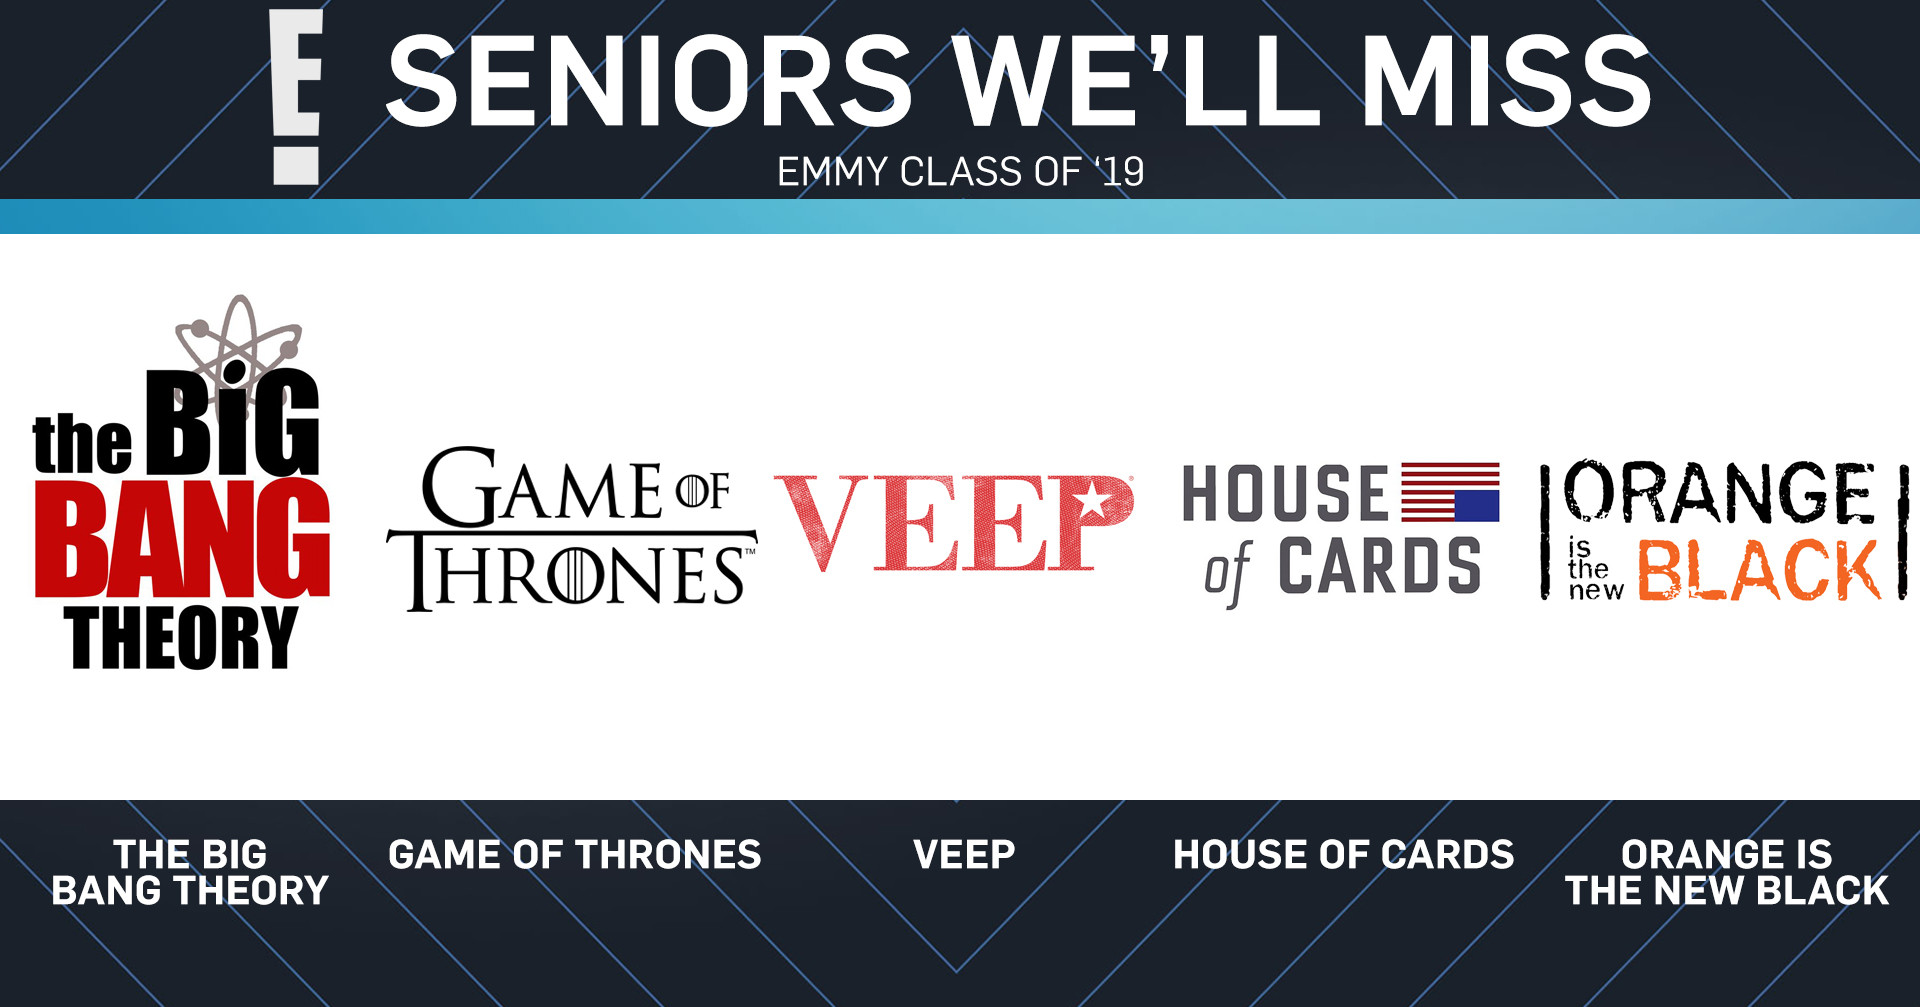 Emmy Class of 2019, Seniors We'll Miss